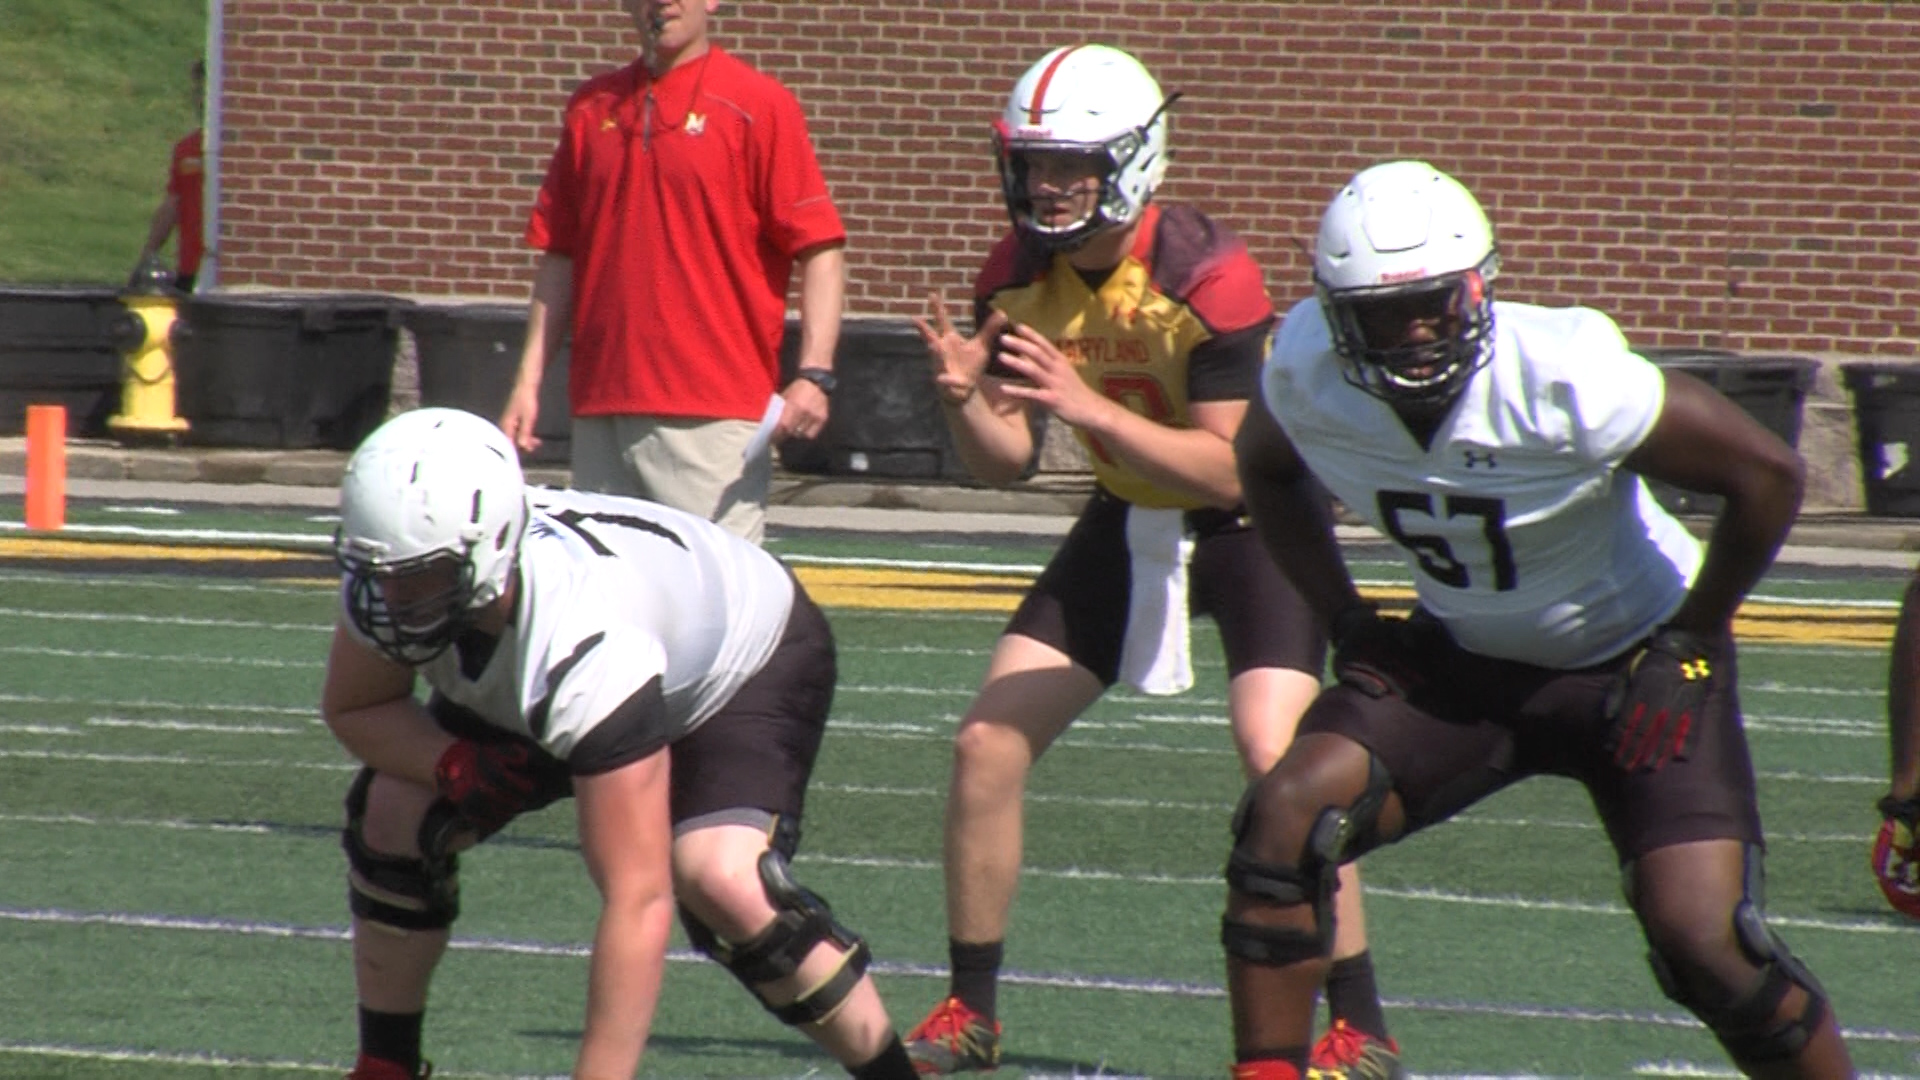 Bortenschlager Will Be Terps Third Starting Quarterback This Season